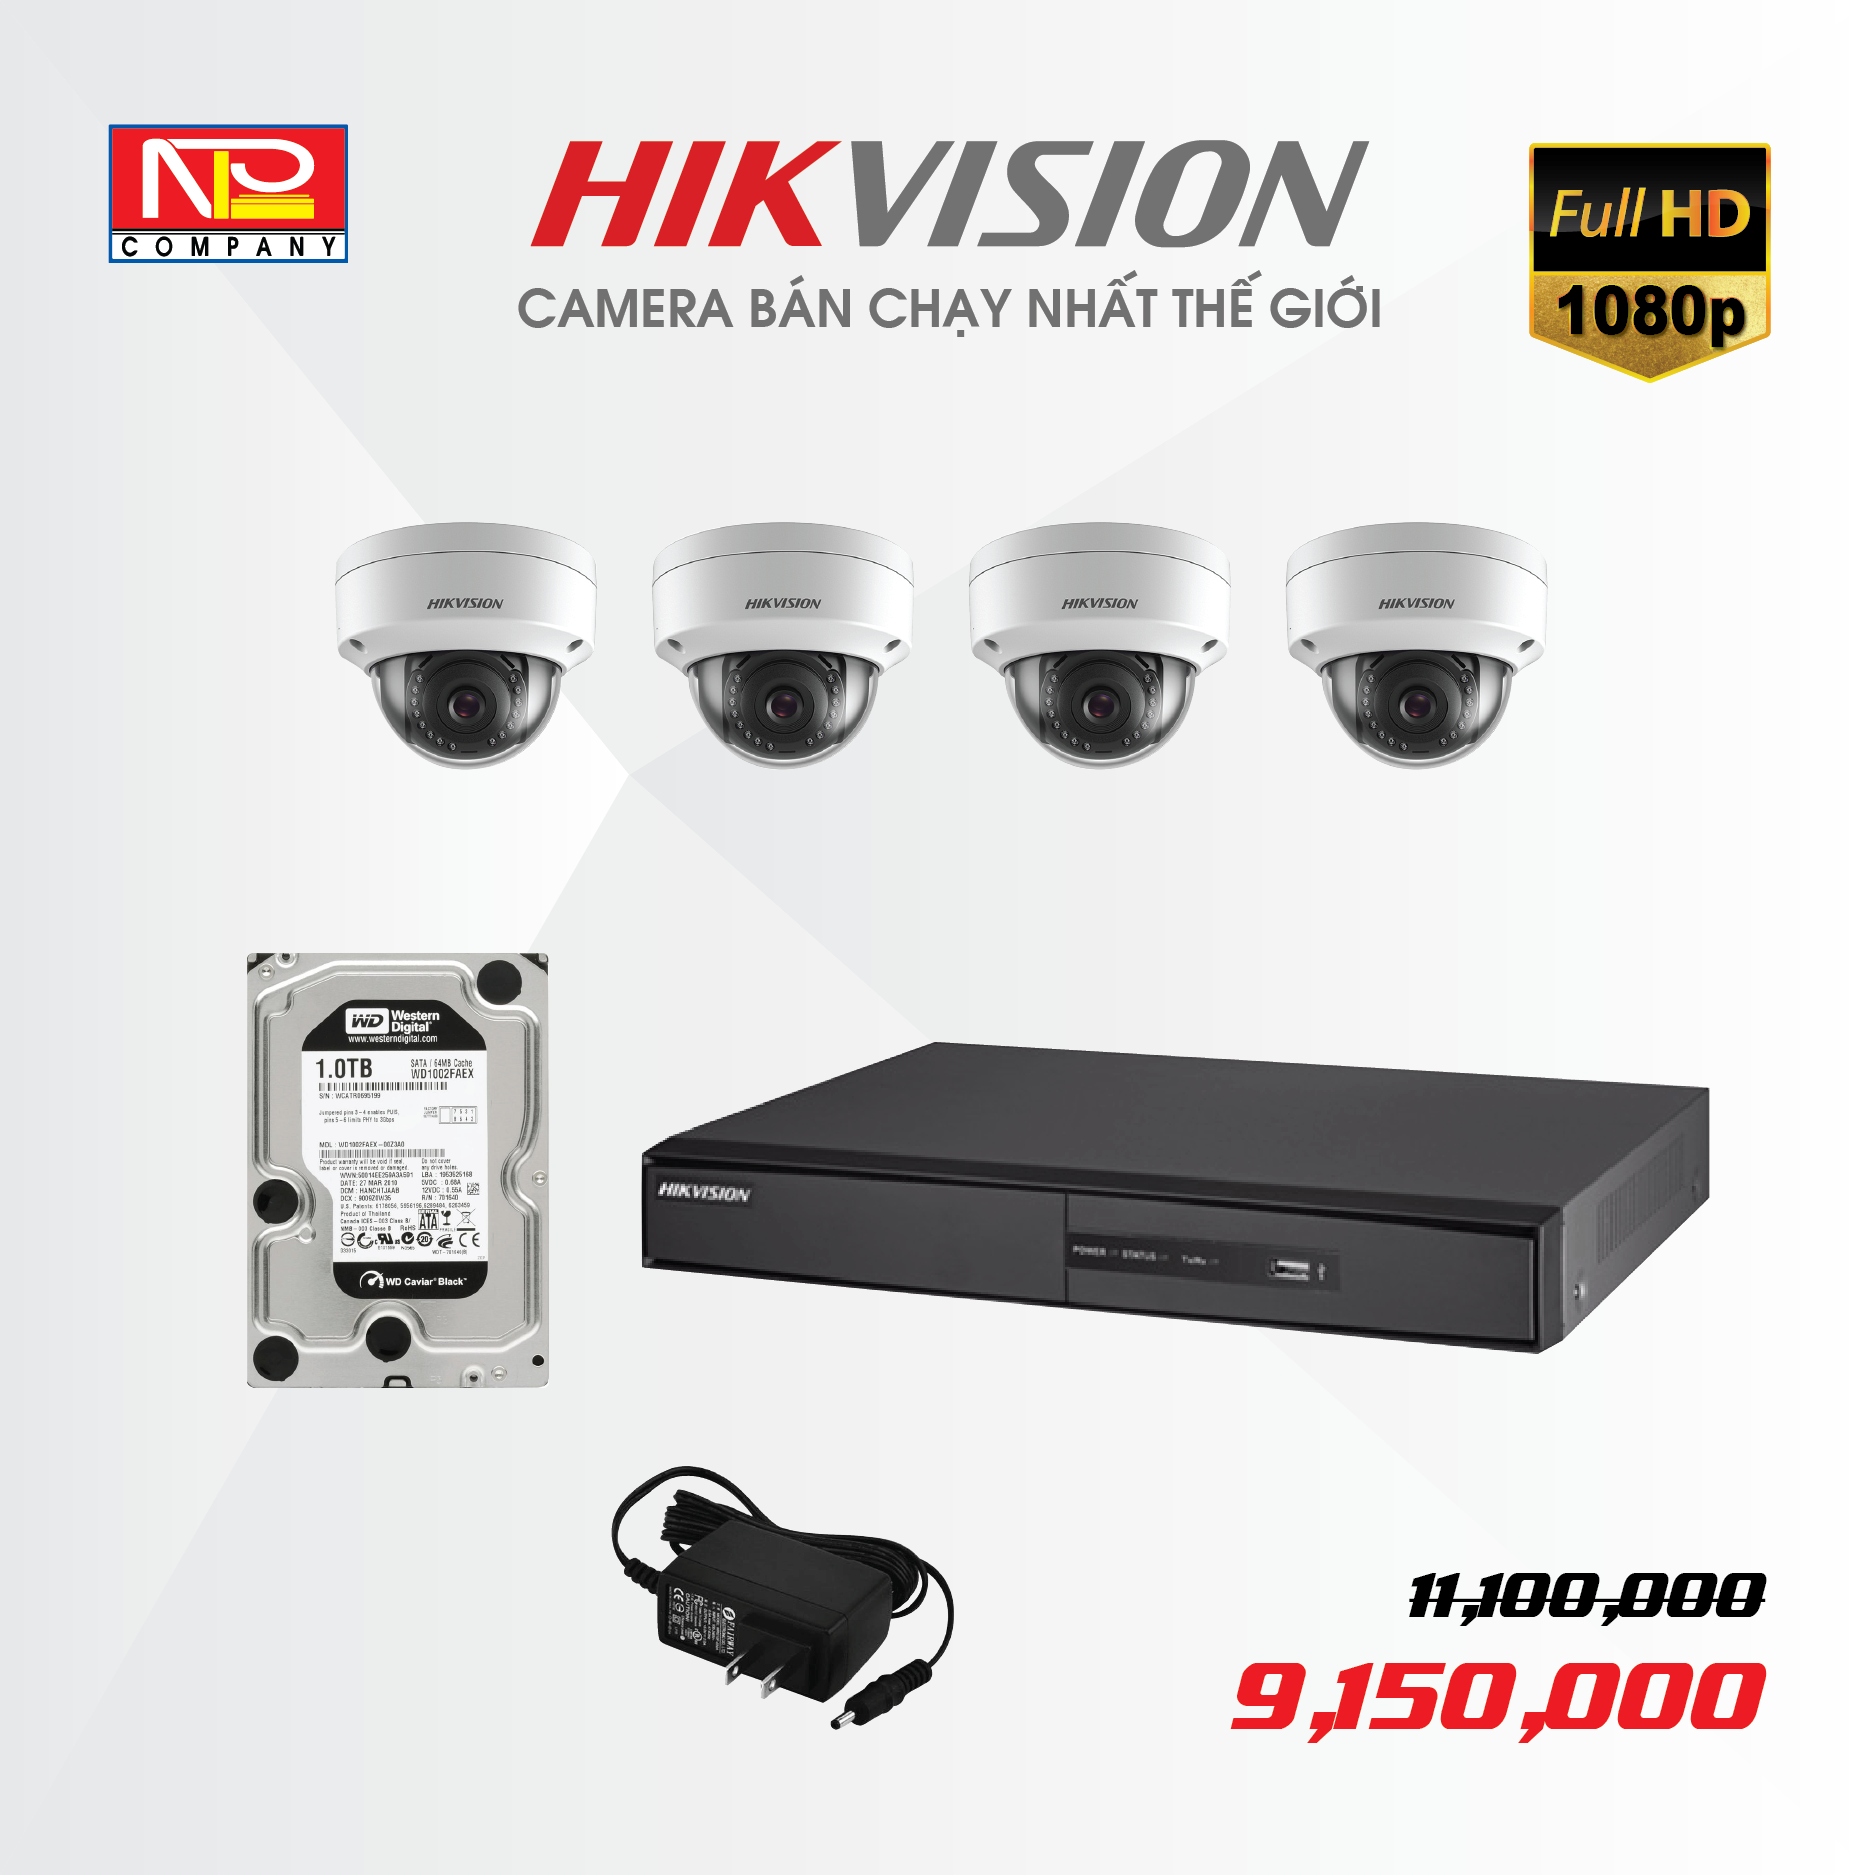 Bộ kit 4 camera IP Hikvision Full HD1080P